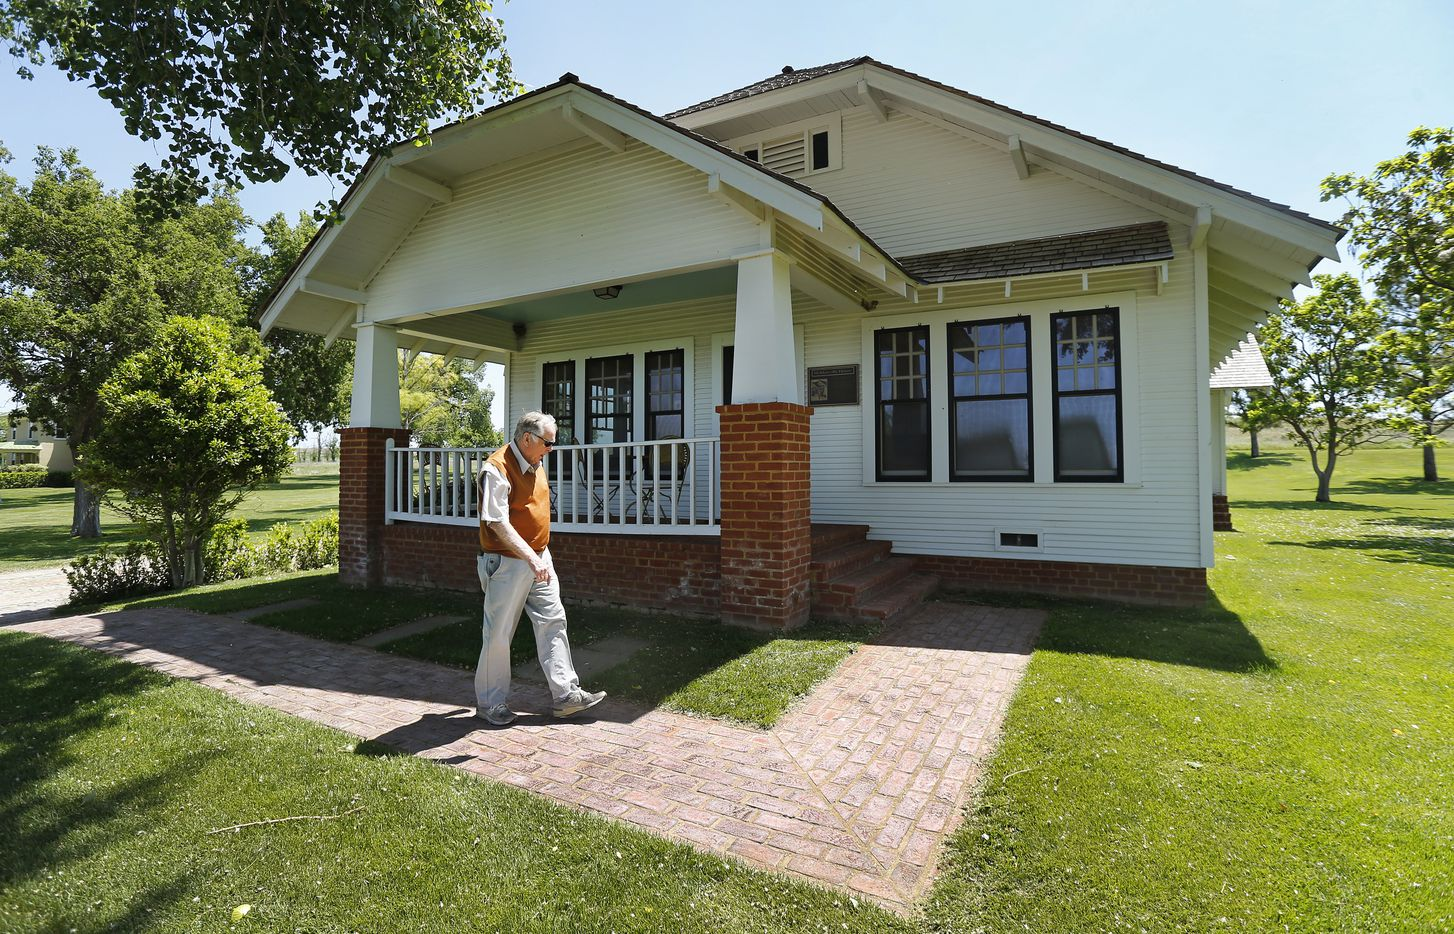 Pickens had his Holdenville, Okla., boyhood home moved and restored to Mesa Vista Ranch. In 2017, he donated it and moved it to his alma mater, Oklahoma State University in Stillwater.